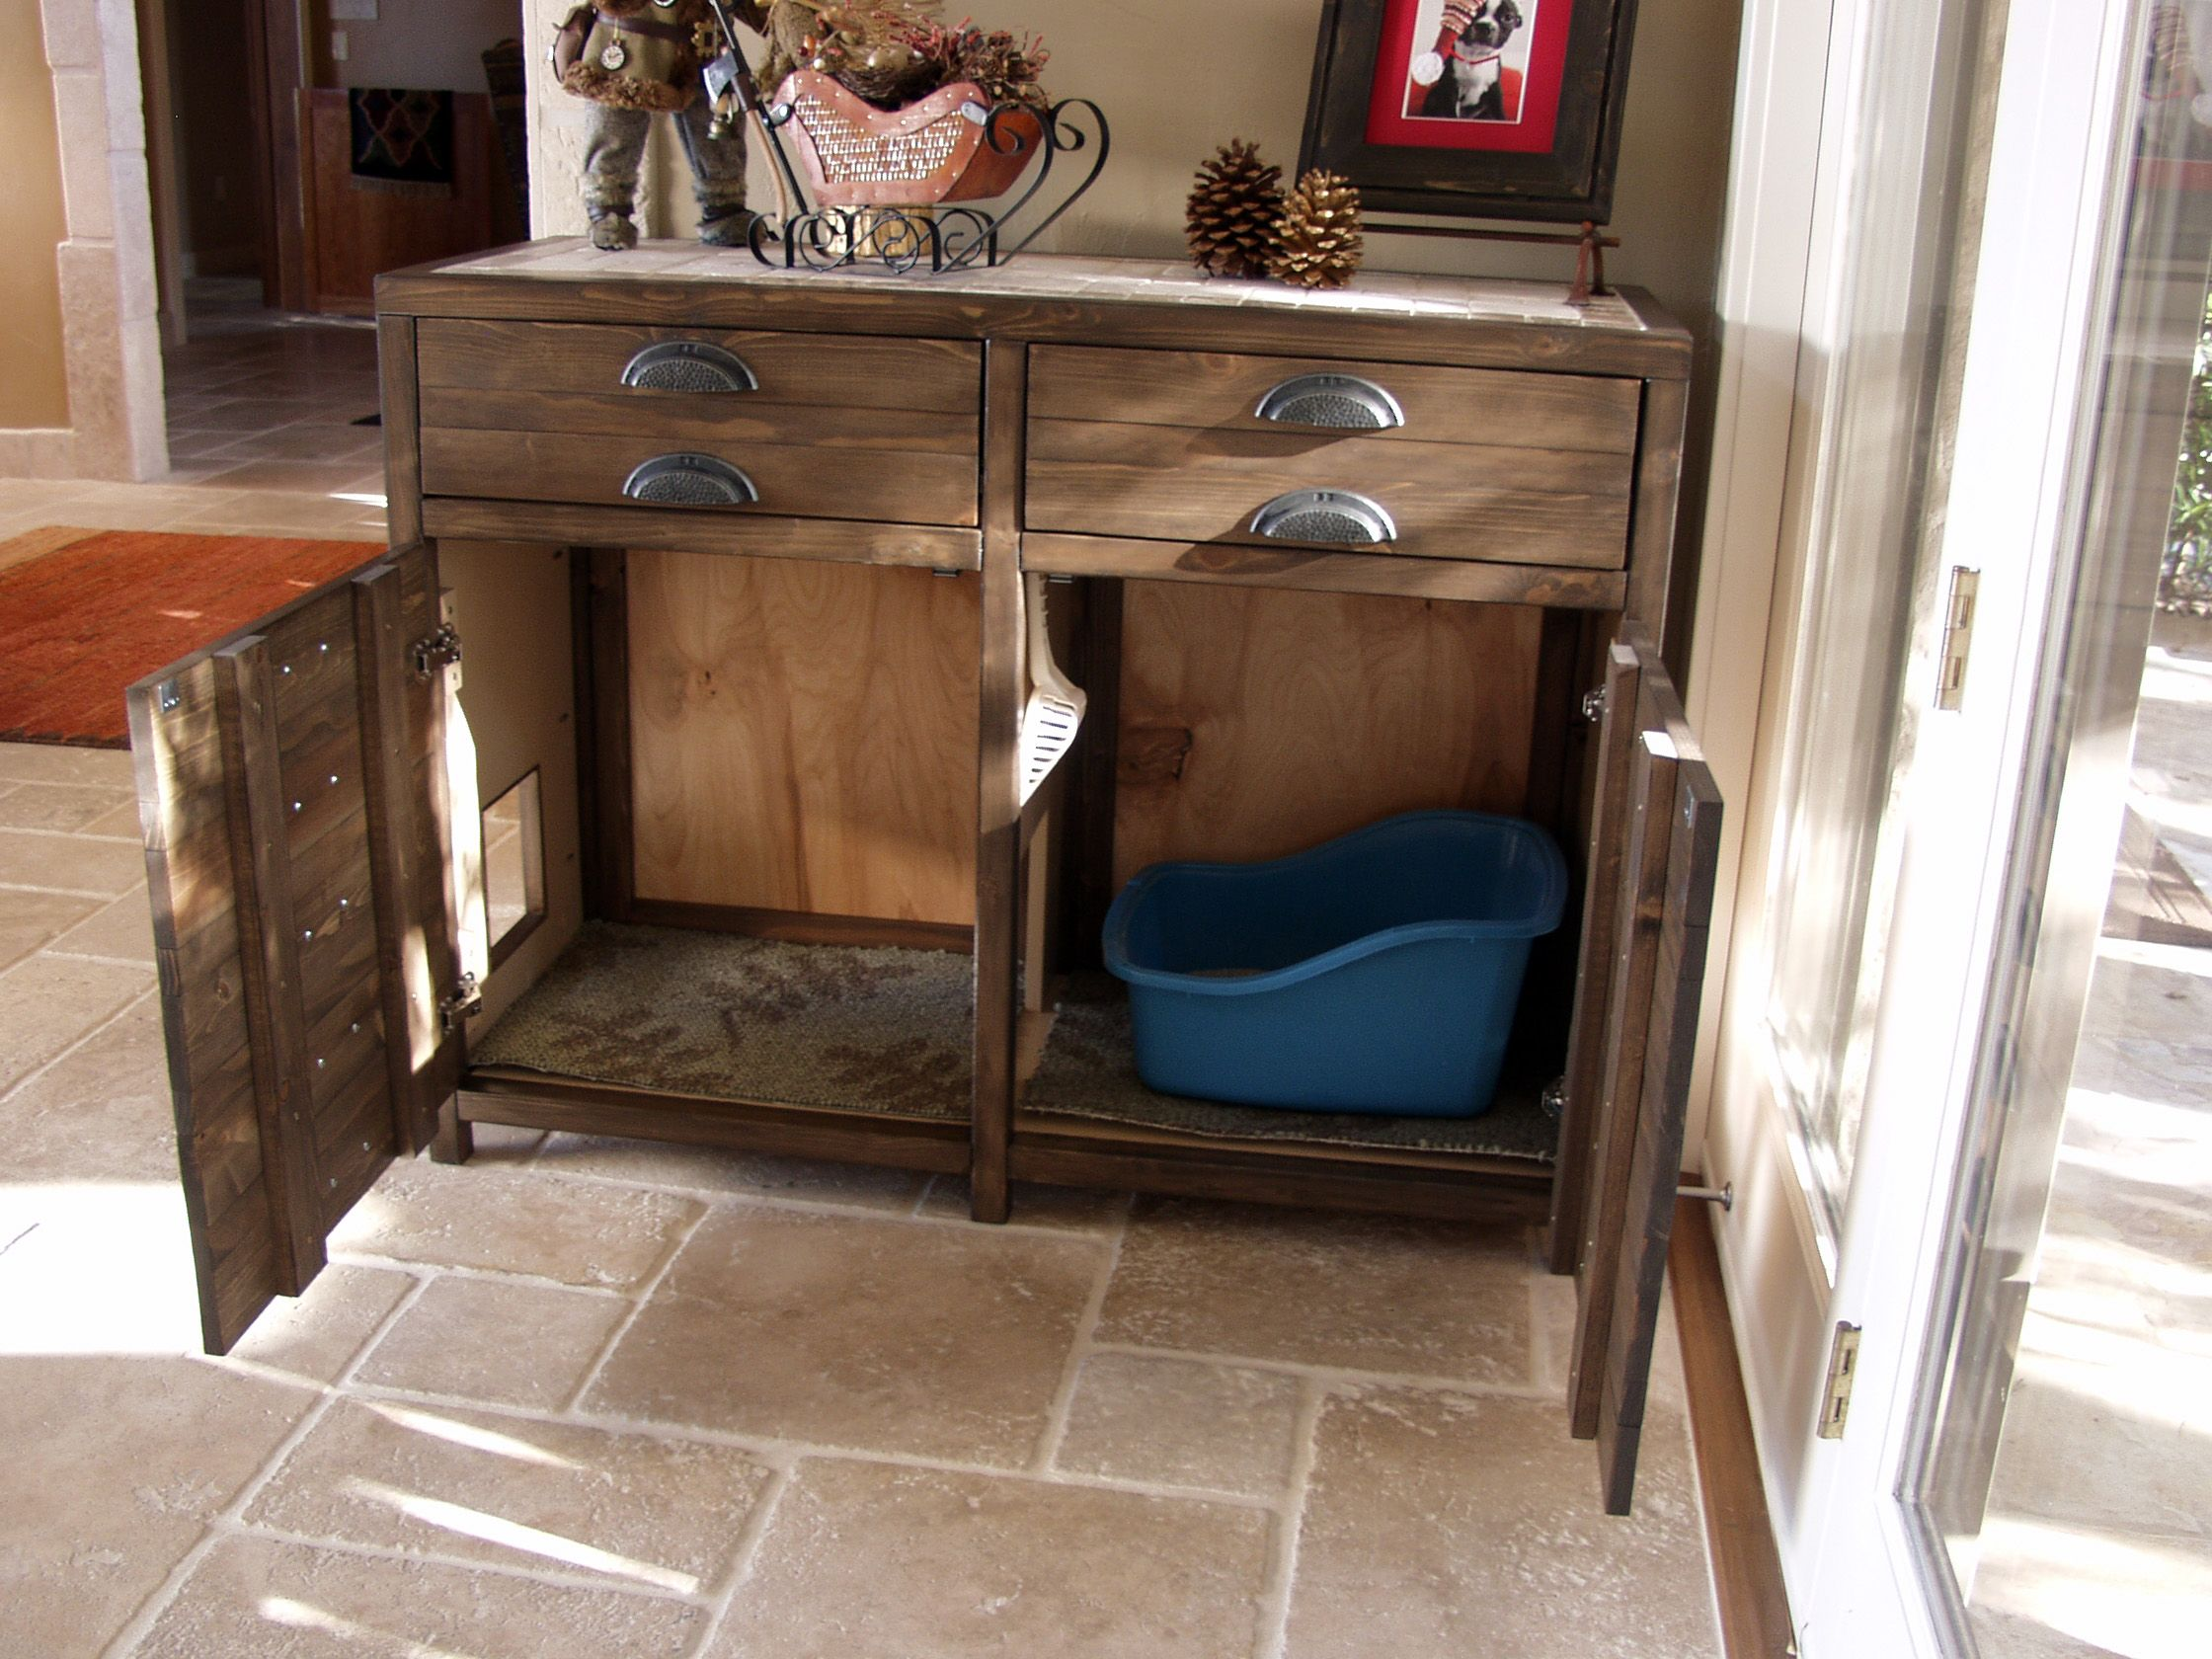 Beau Printeru0027s Console Or Sneaky Litterbox Cabinet? | Do It Yourself Home  Projects From Ana White